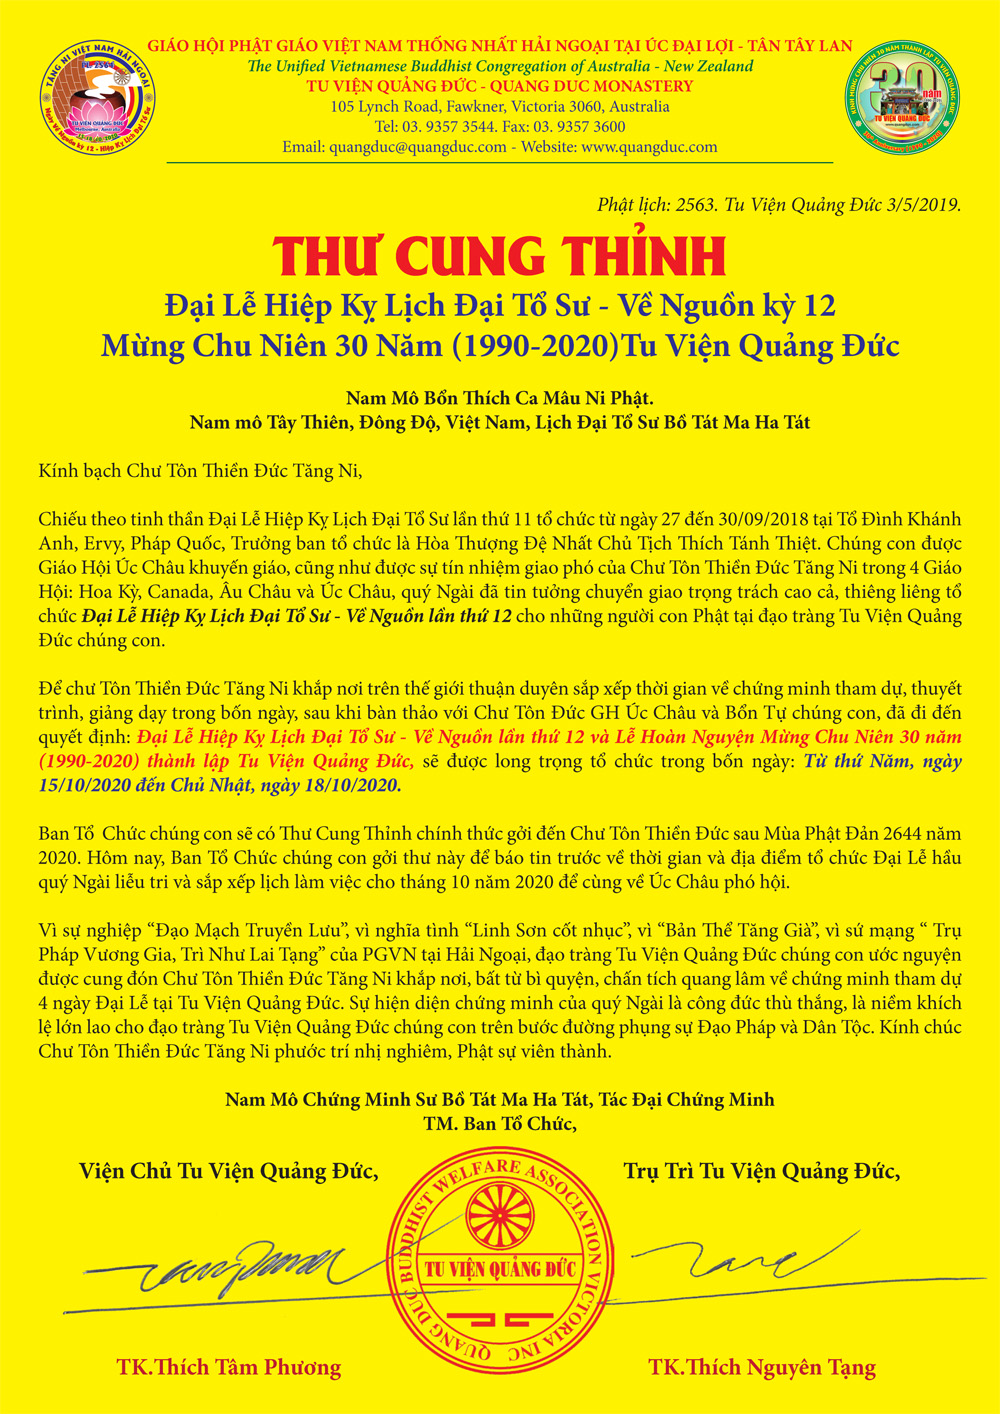 Thu Cung Thinh Le Hiep Ky Ve Nguon ky 12-01